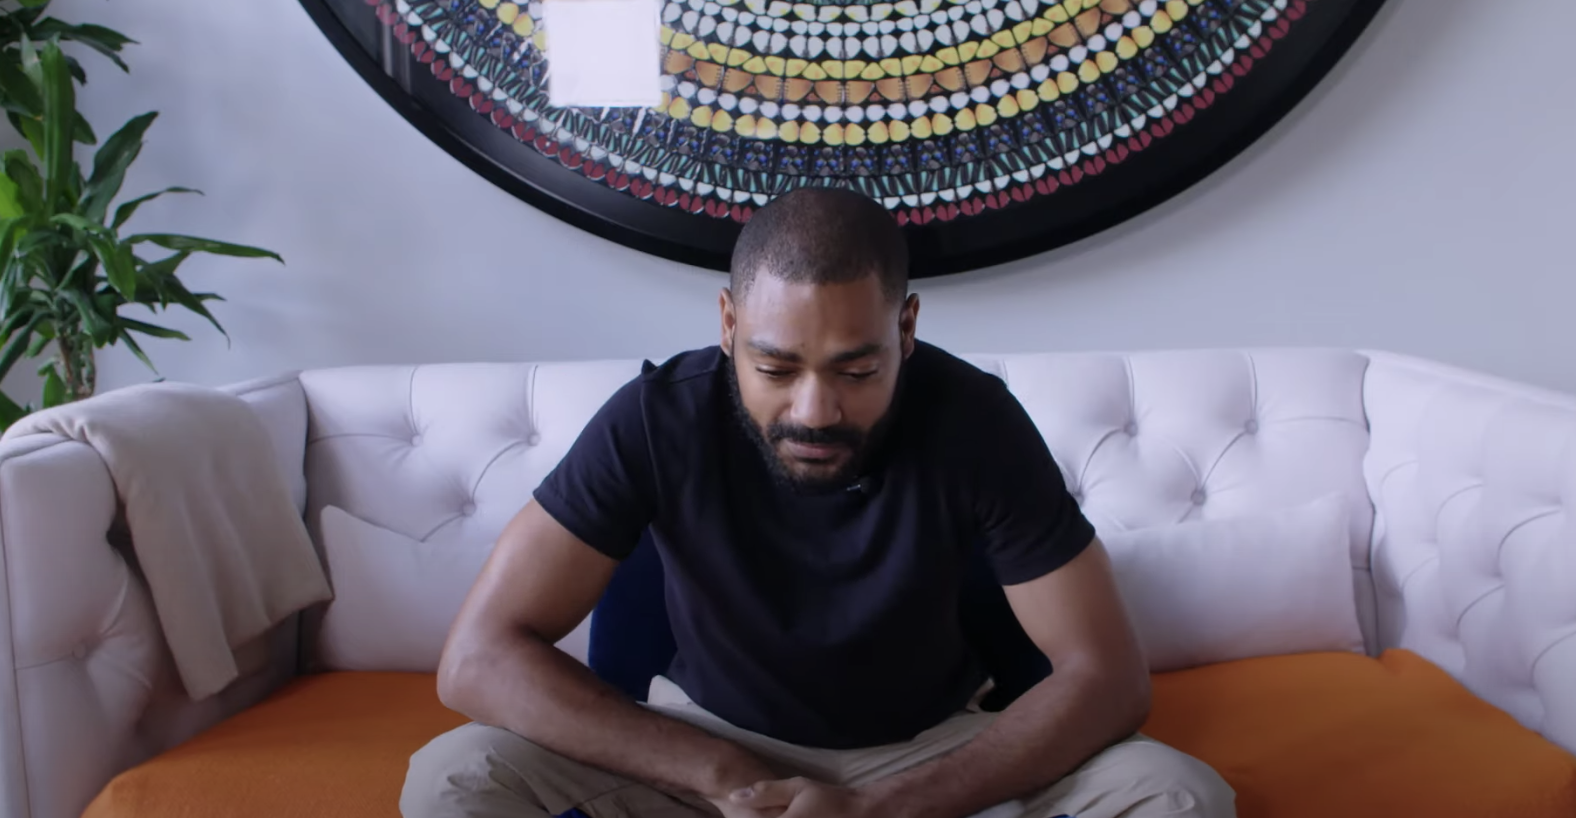 Kano Launches New Video-Chat Series 'Newham Talks'